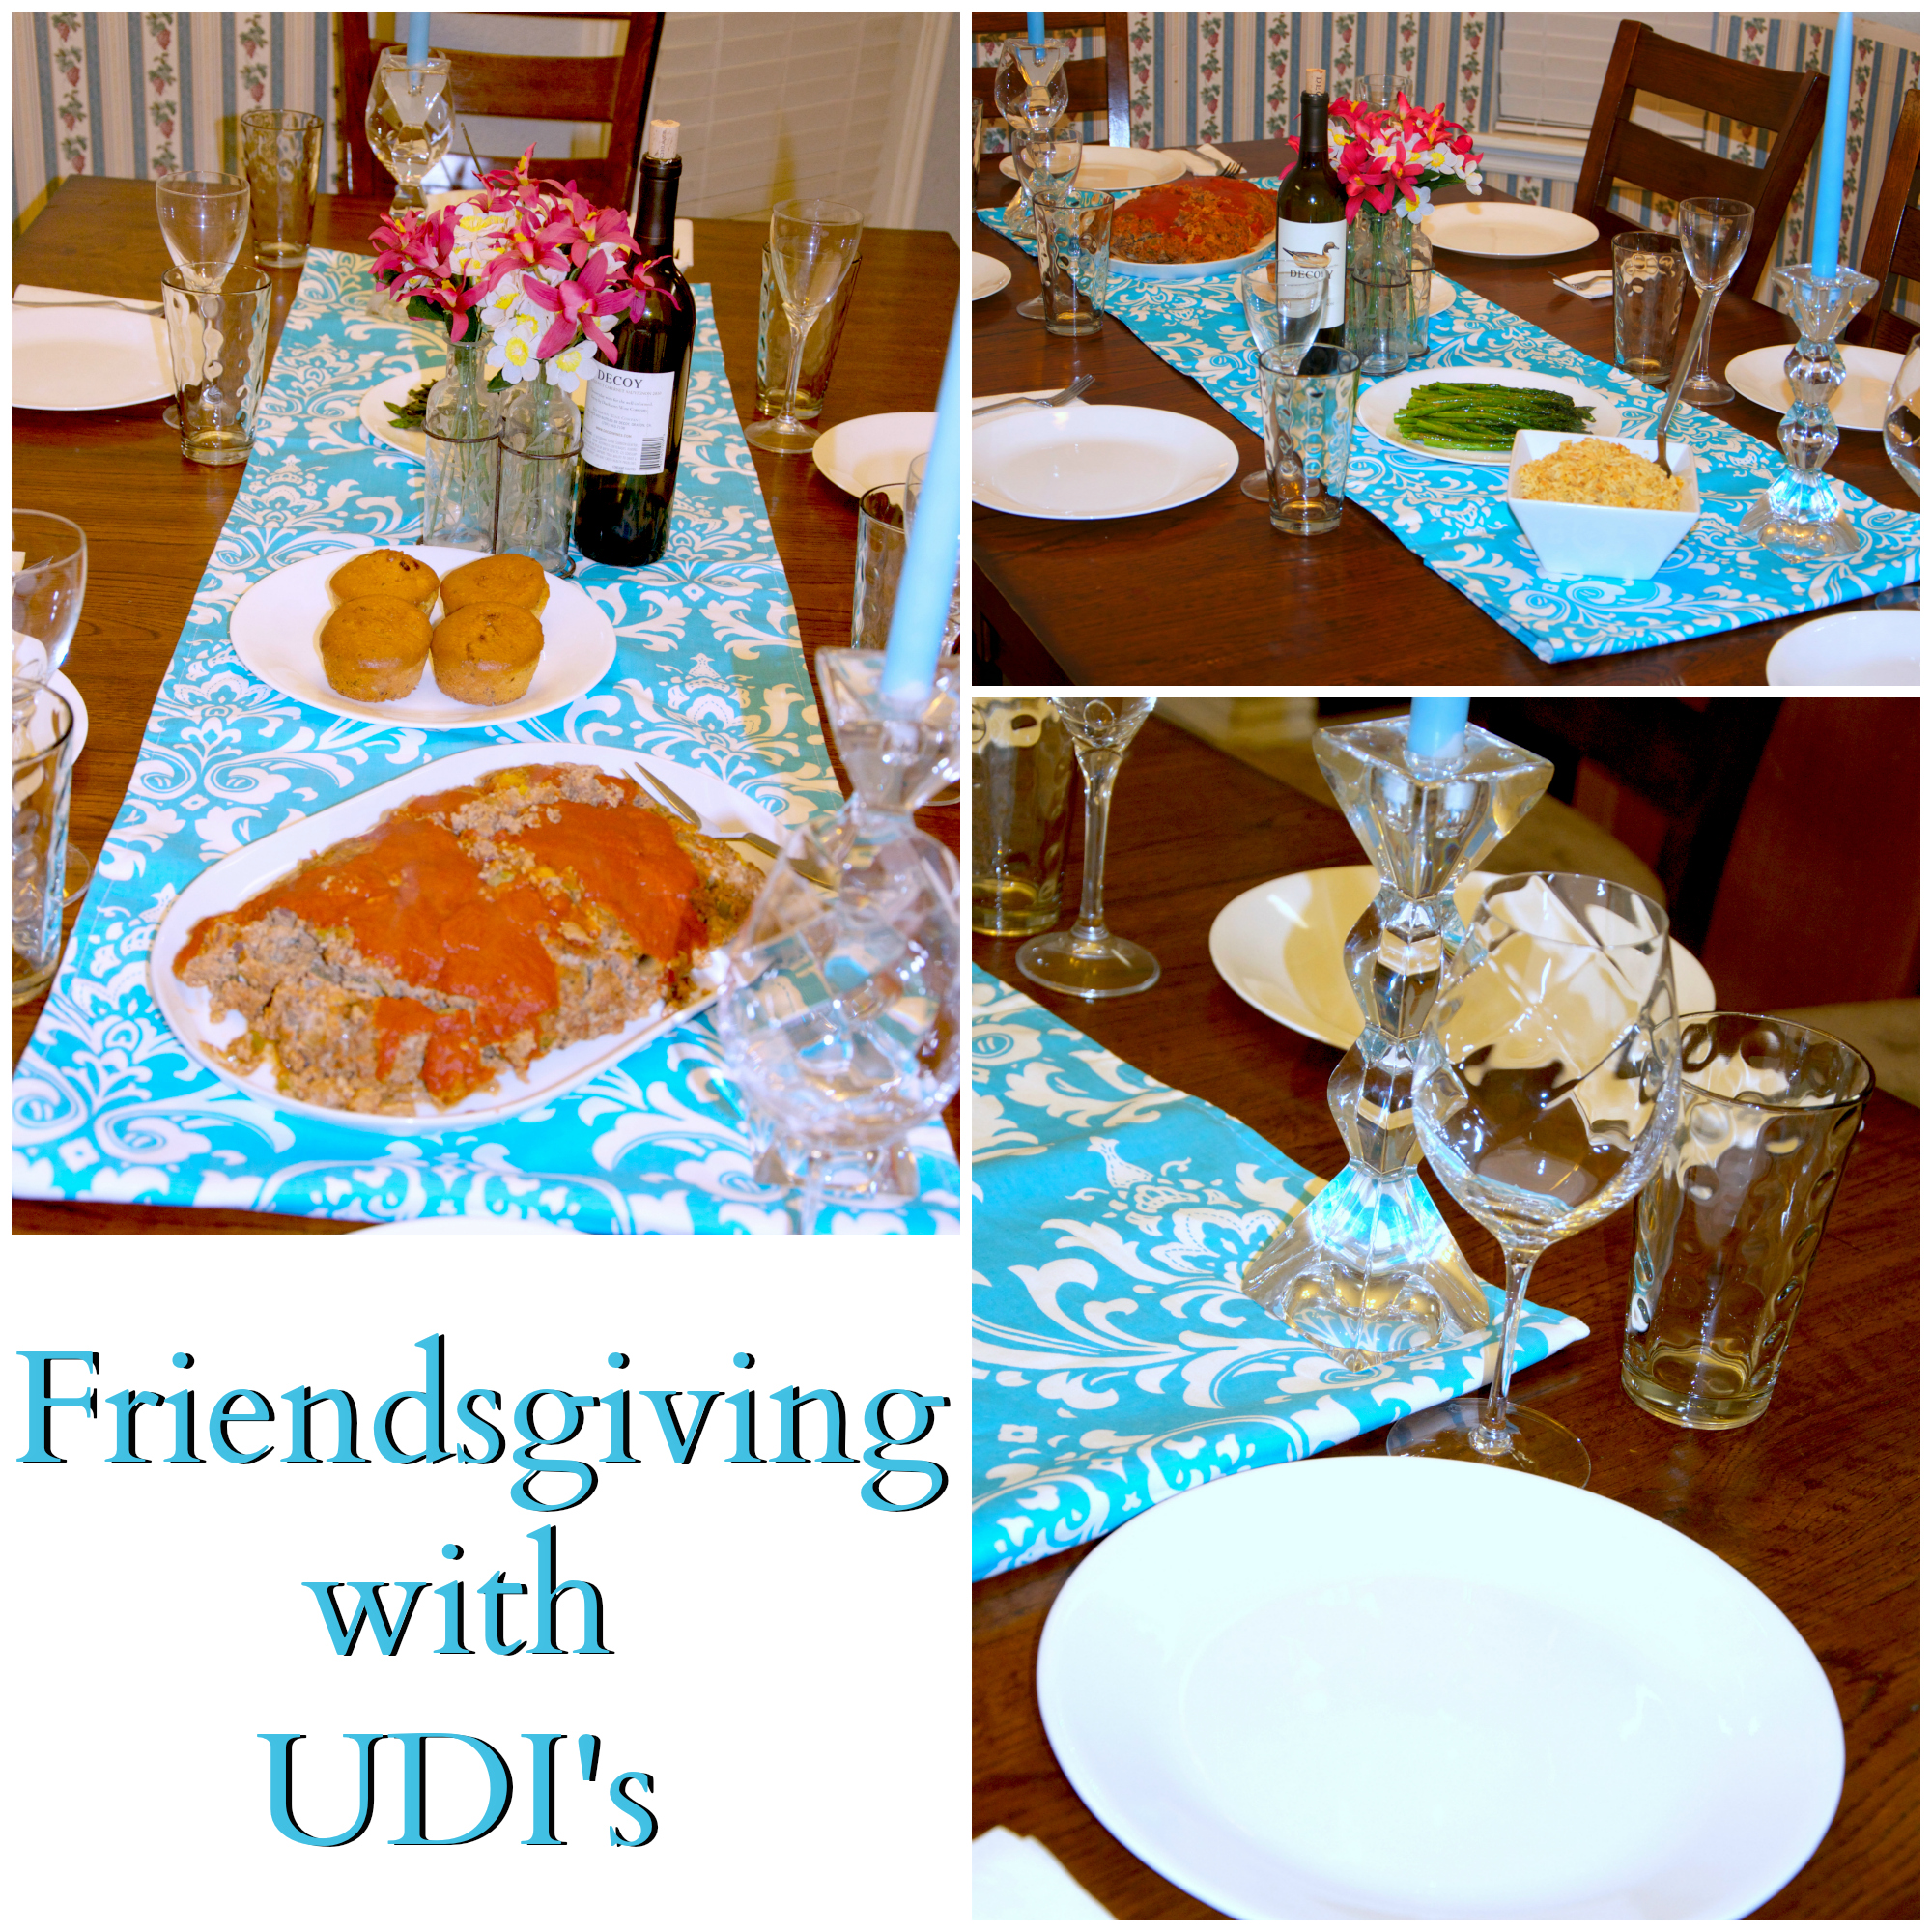 Friendsgiving7